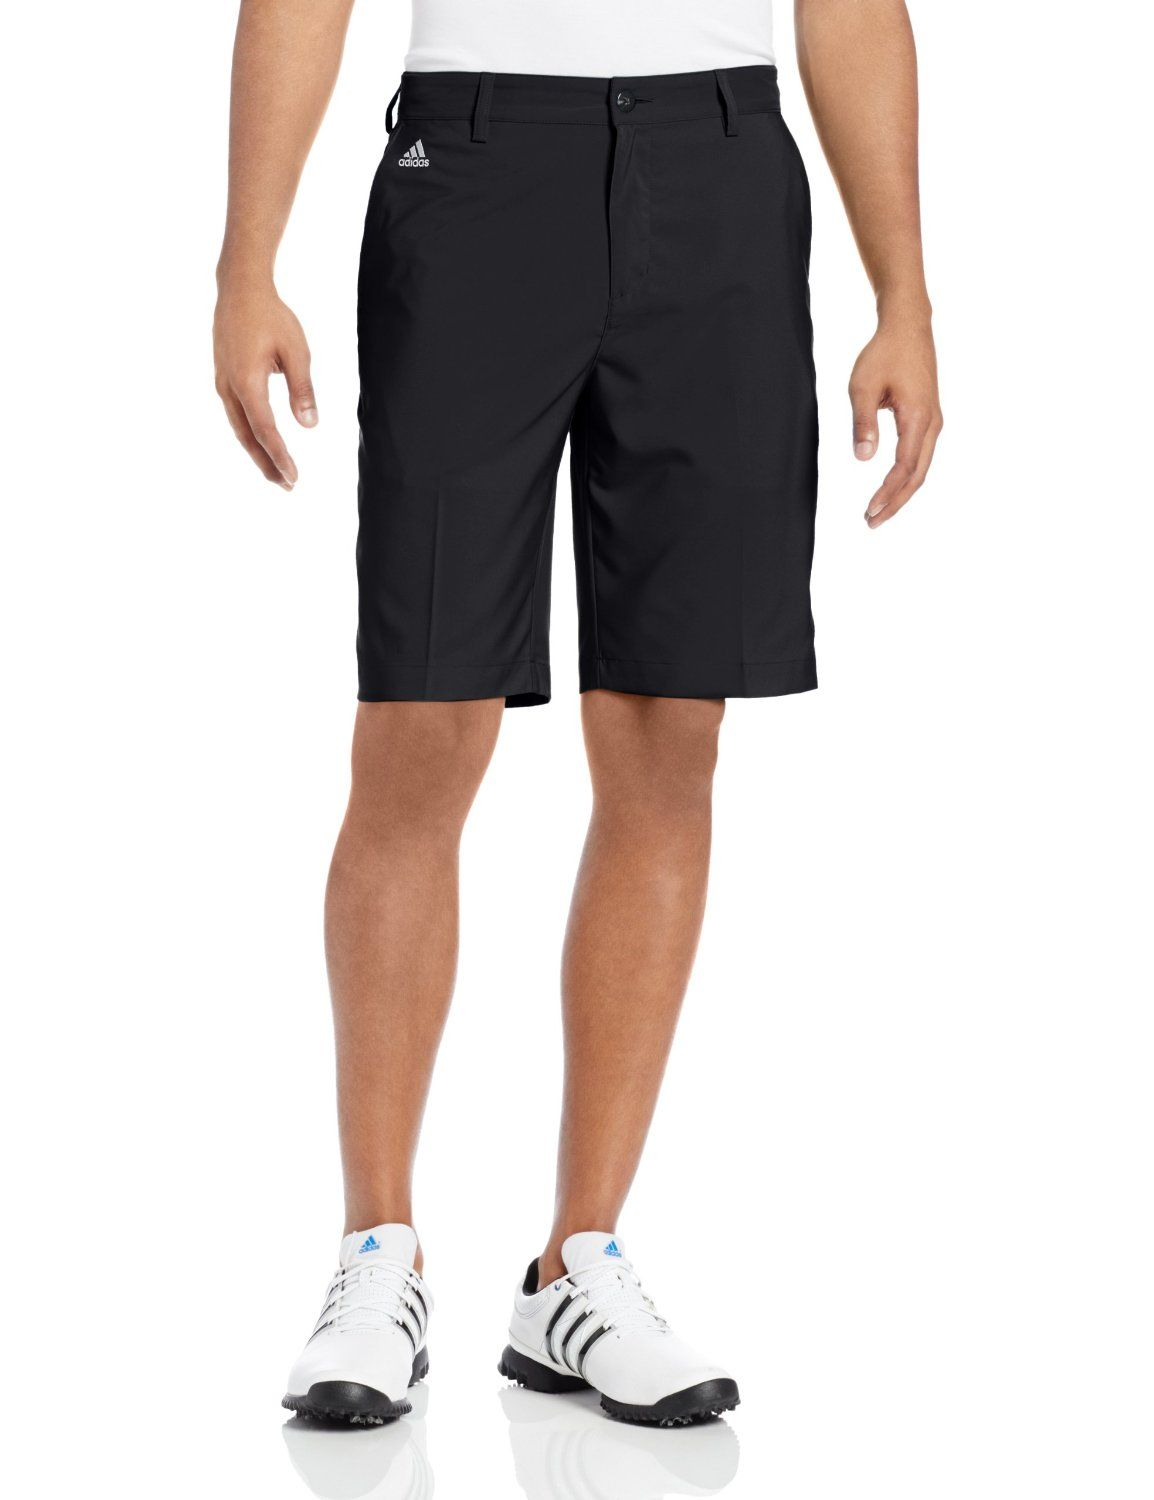 4cefd7643 Best of Top 10 Best Golf Shorts For Men in 2016 Reviews